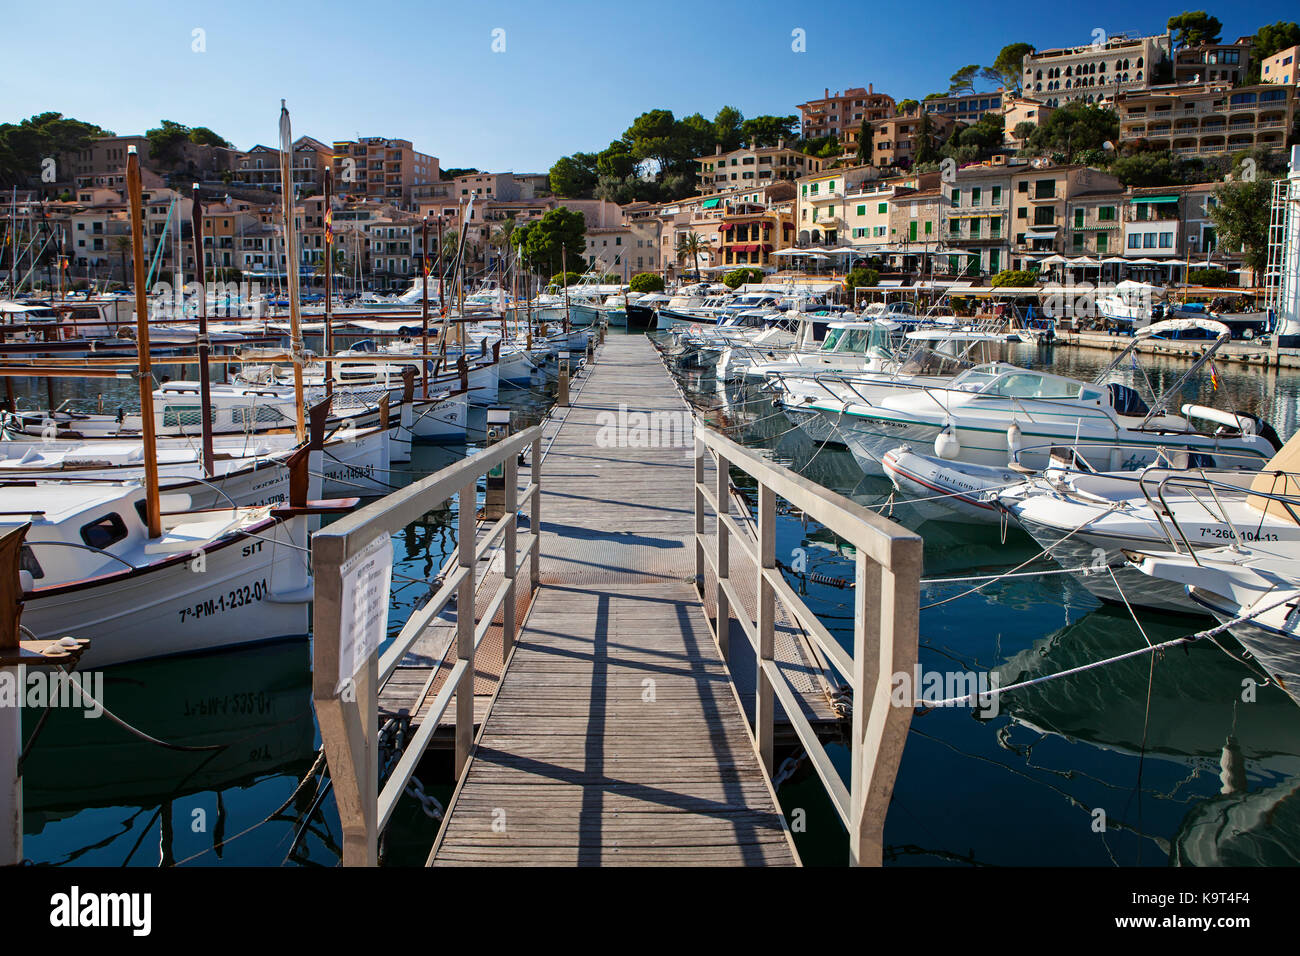 Port de Soler, Majorca, Spain in September 2017 Stock Photo